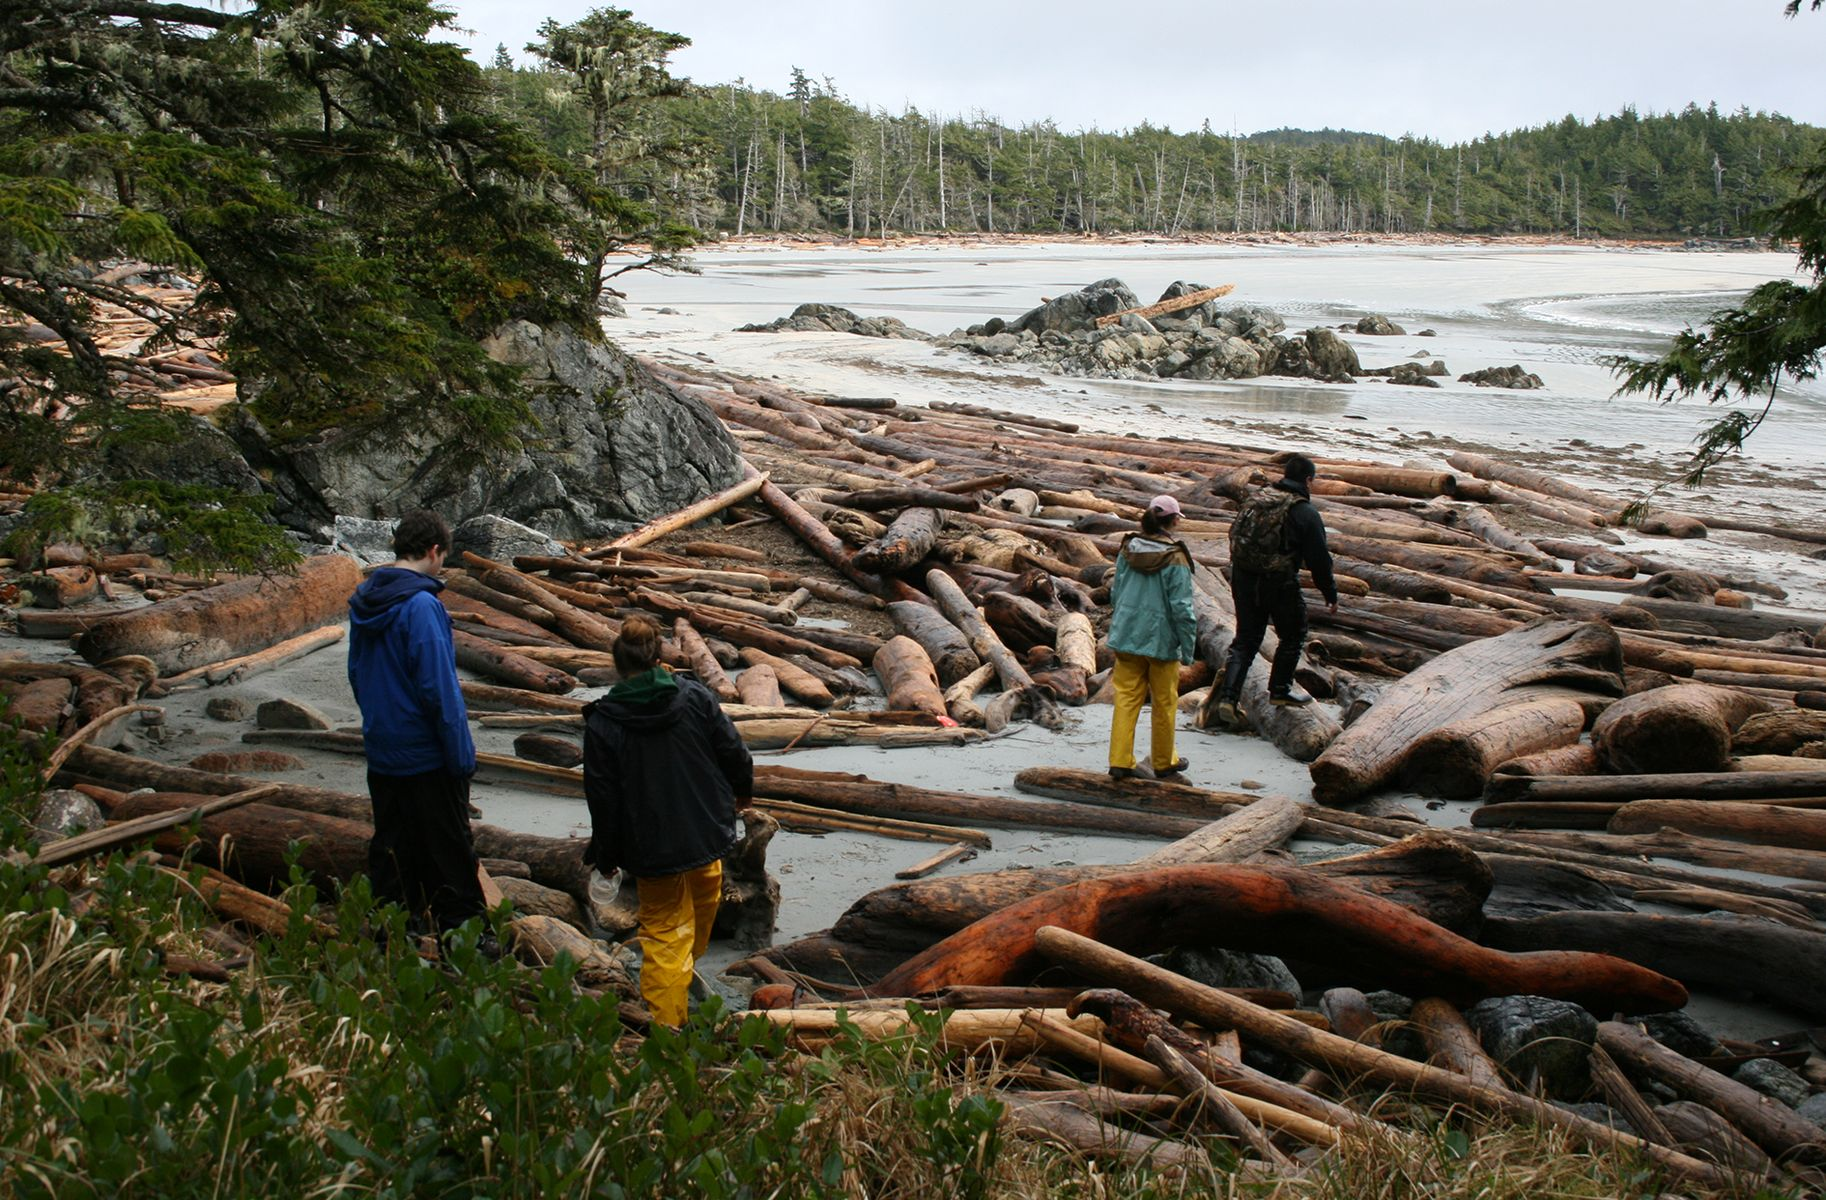 Four students  walk across large piles of driftwood that cover the beach.